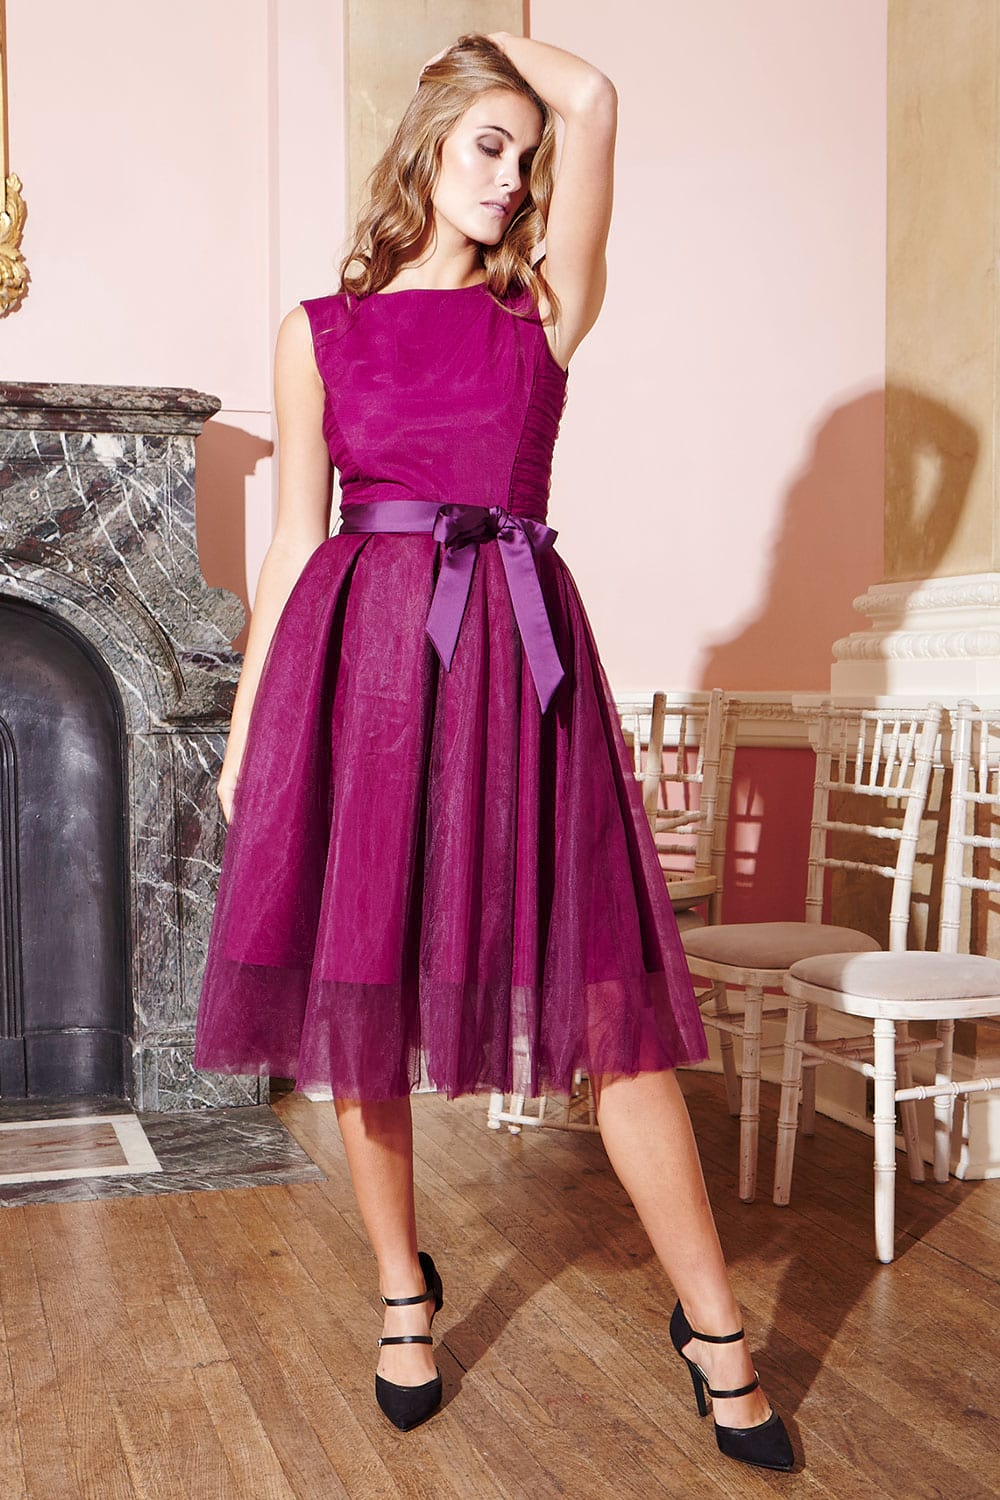 Hybrid Fashion 1183 Edith Magenta Tulle Full Skirt Dress with Satin Waisttie